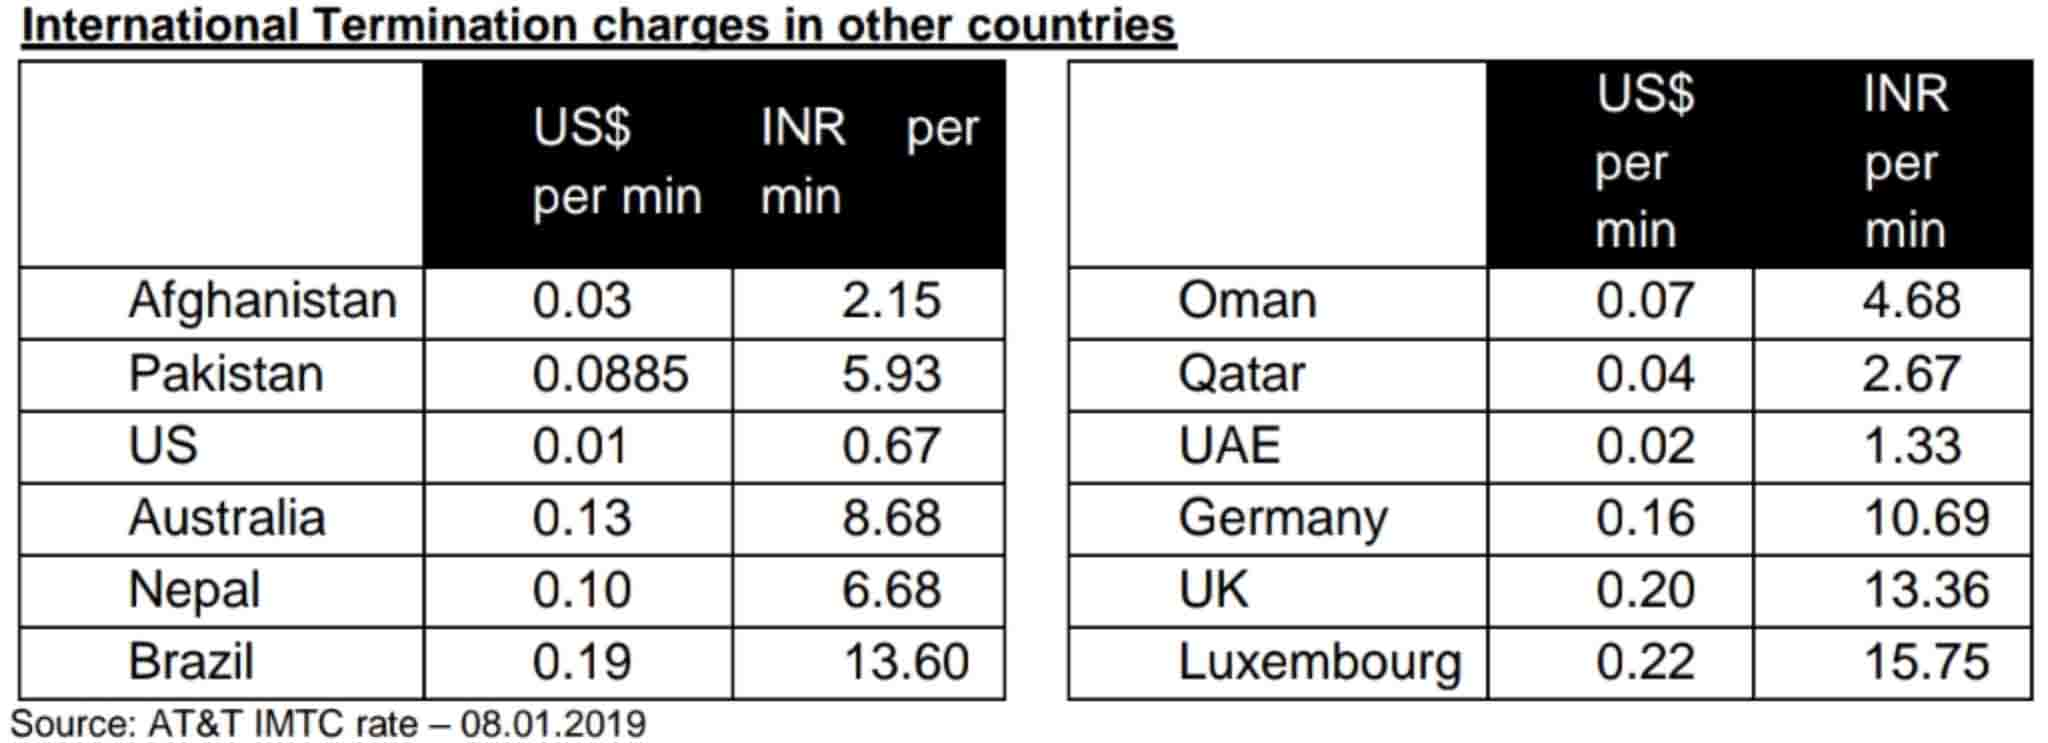 International termination charges in other countries